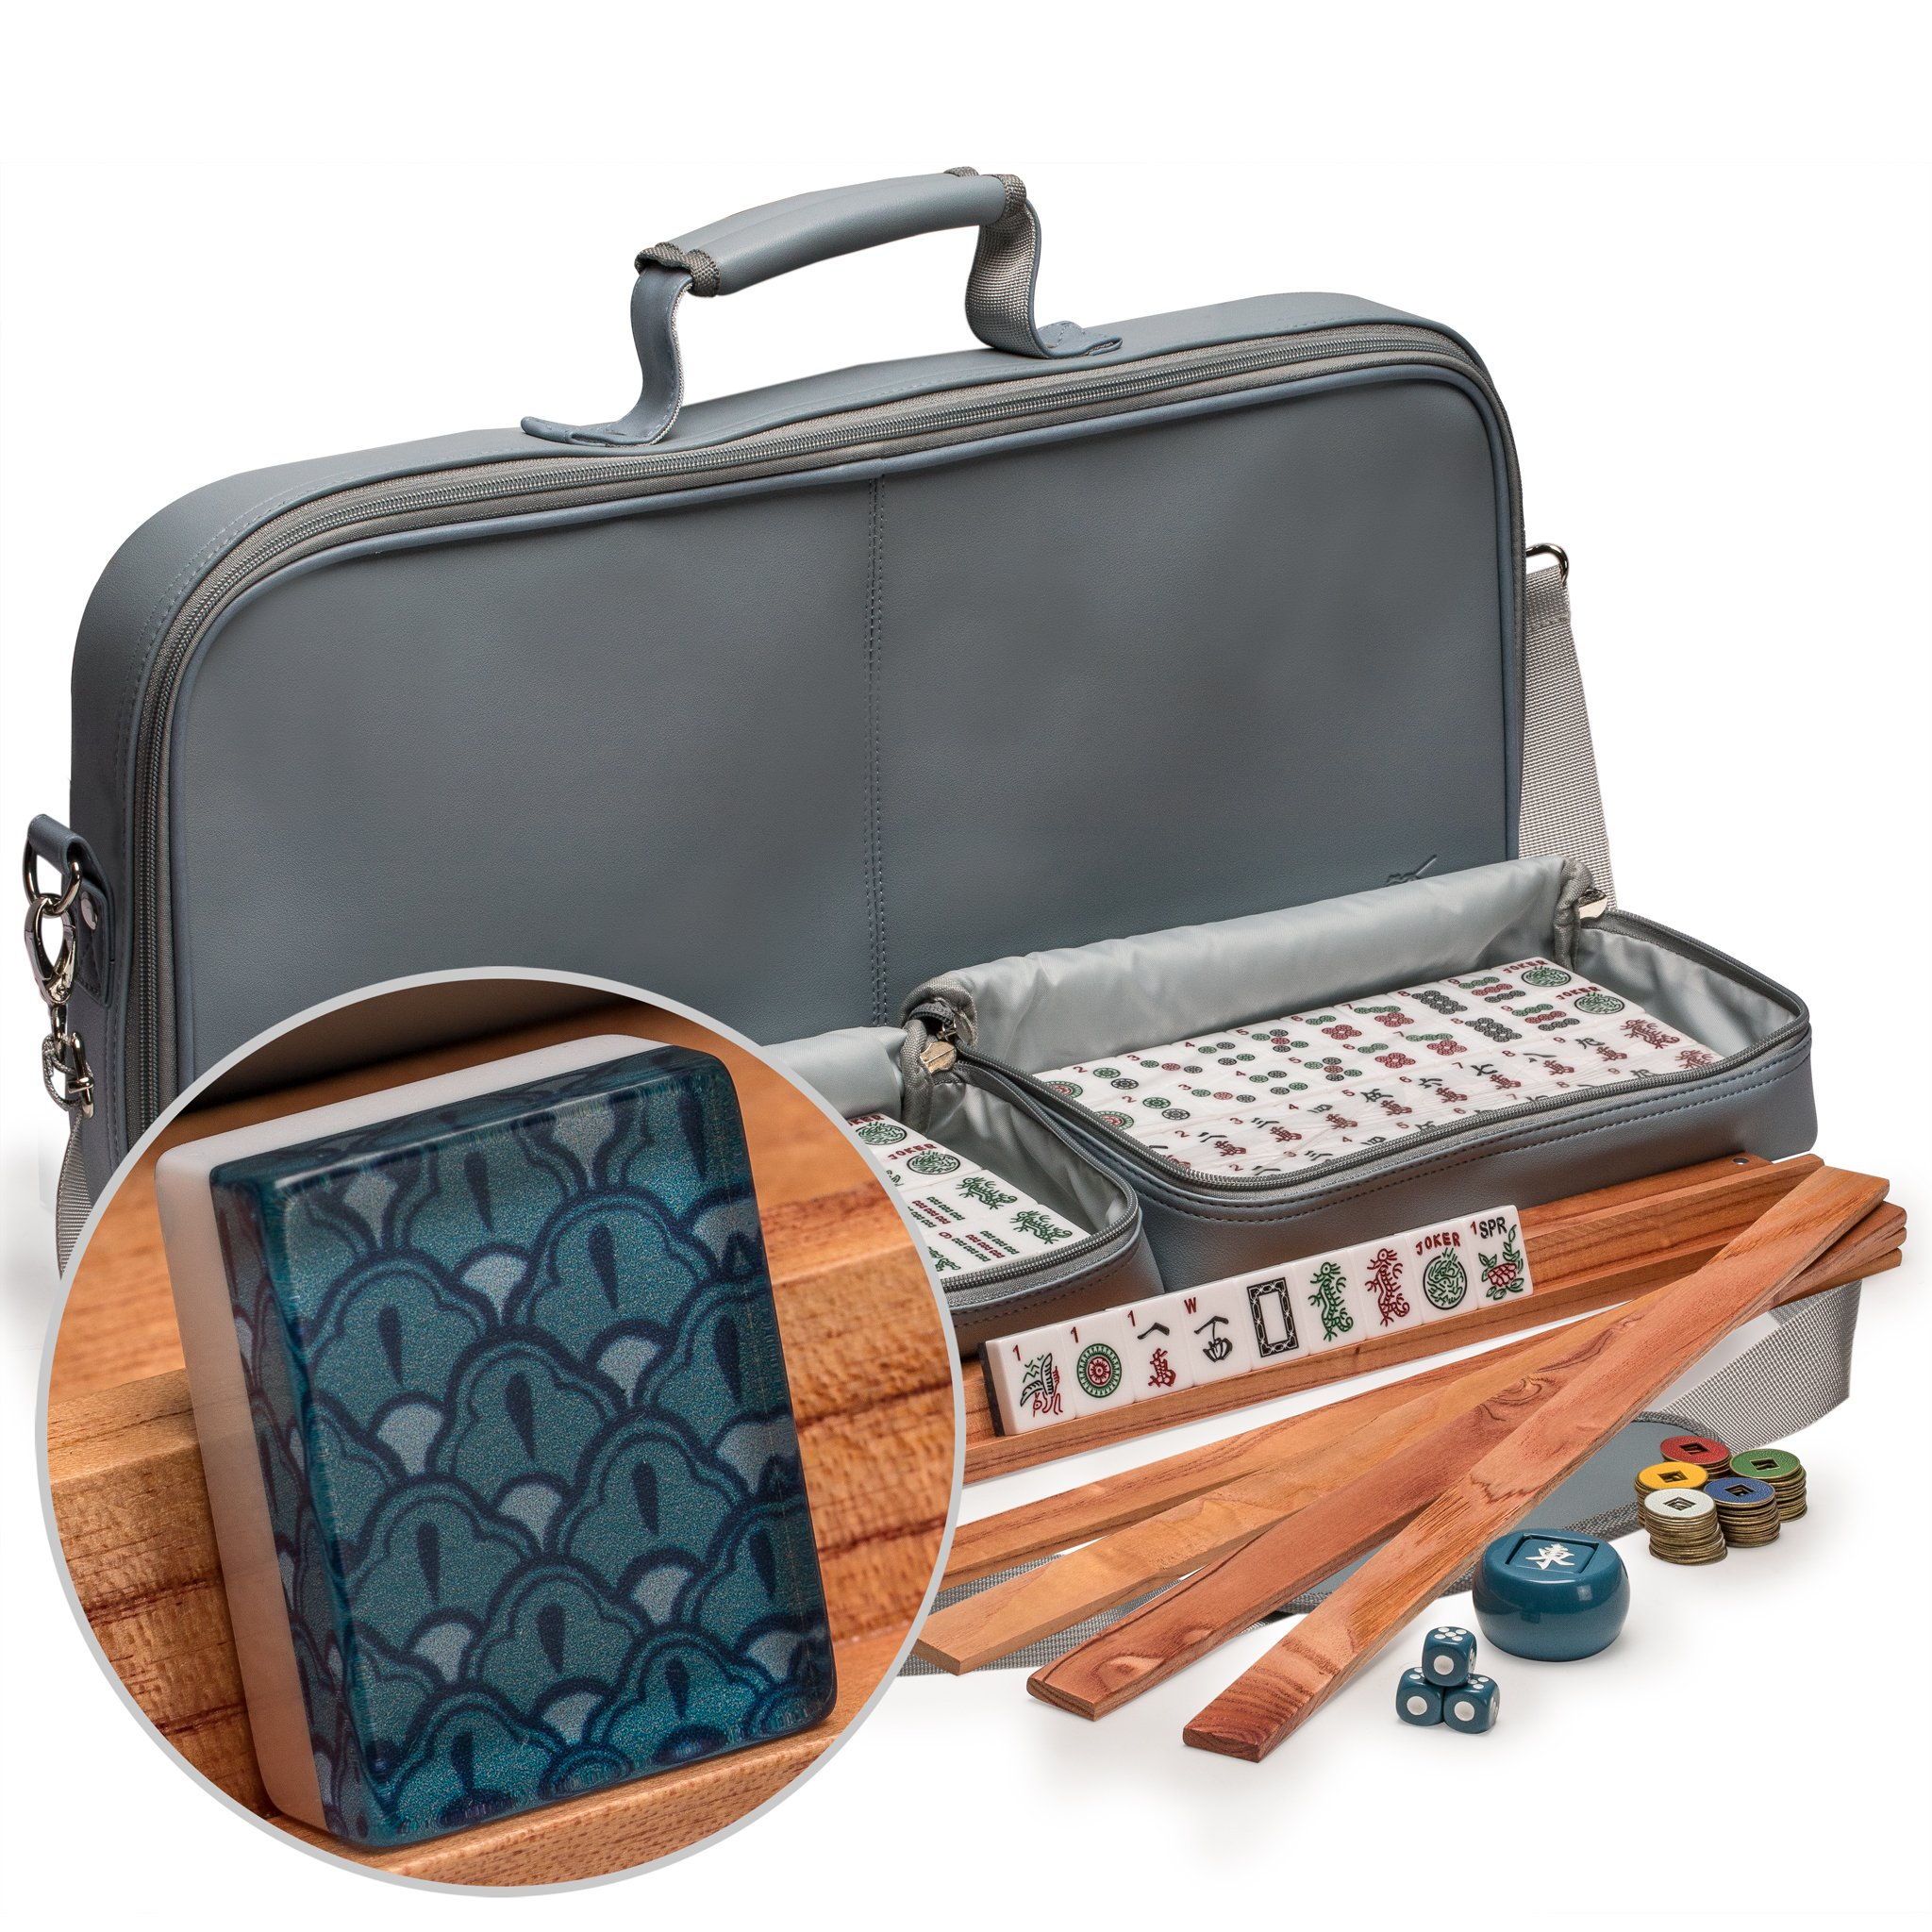 "Yellow Mountain Imports American Mahjong Set with 166 Tiles Adorned with Oceanic Motif, Leatherette Case, Racks with Pushers, Betting Coins, Dice, and Wind Indicator, ""Oceana"" by Yellow Mountain Imports"